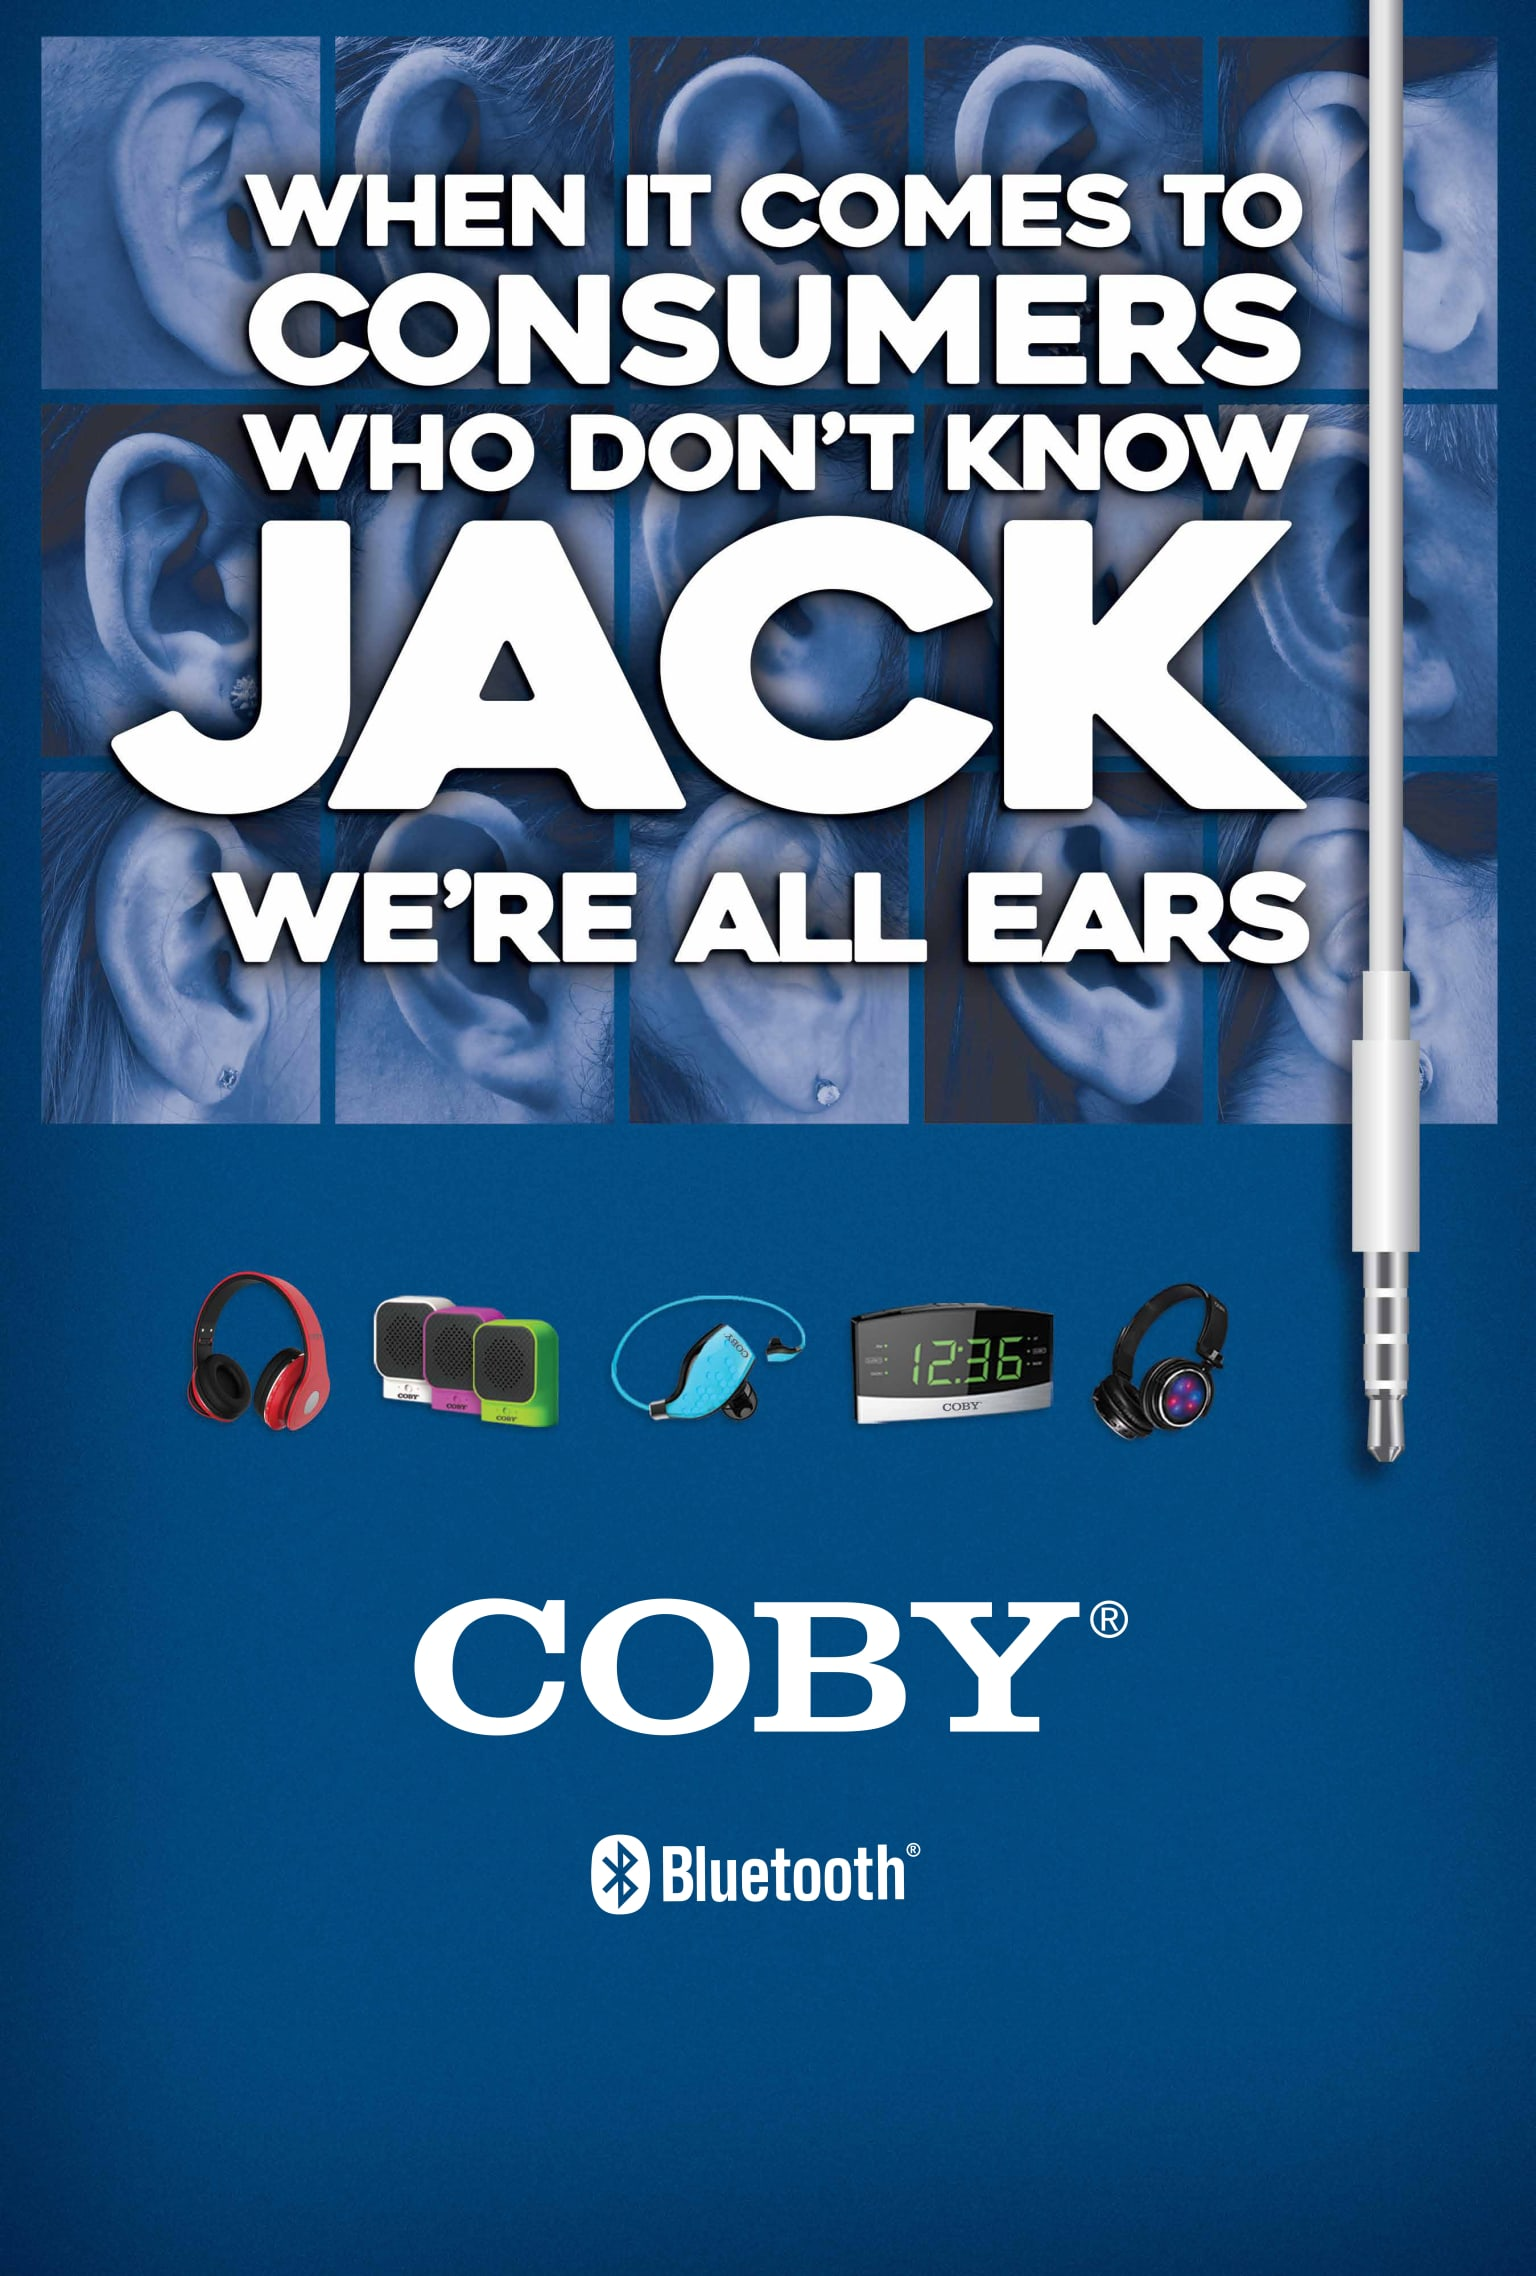 NO JACK? KNOW COBY